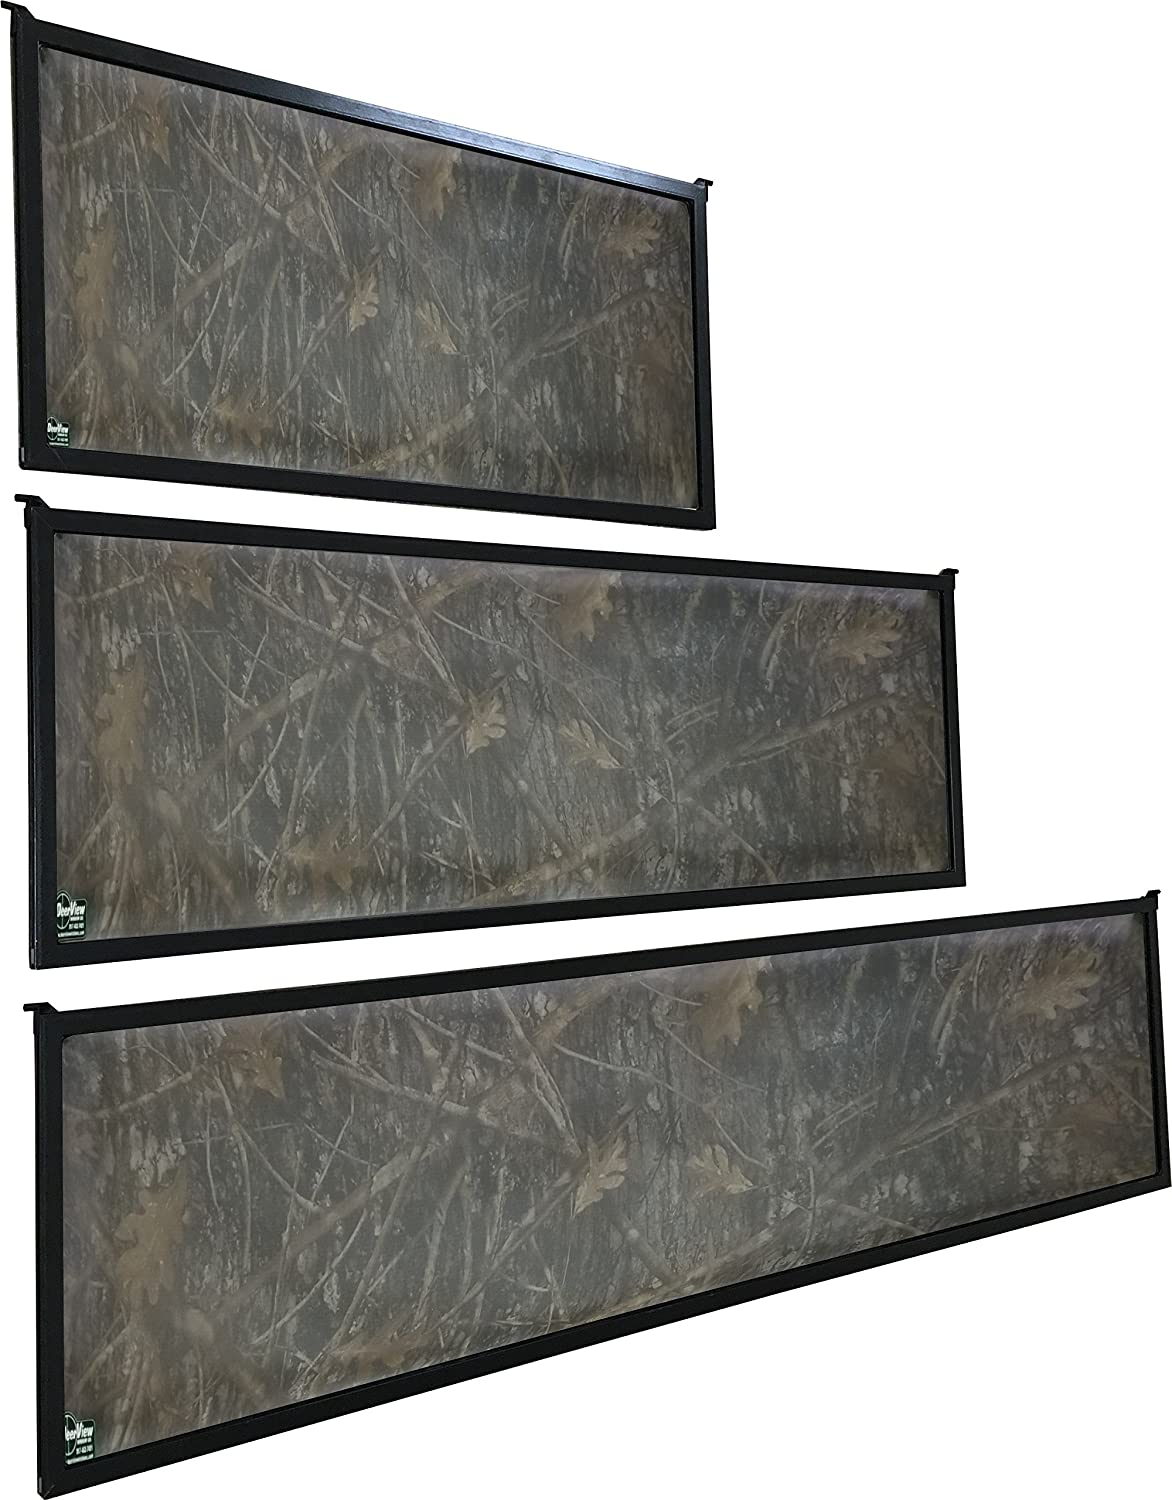 DeerView Hinge Blind Window - Clear, Grey Tint, Clear Camo, or Grey Tint  Camo